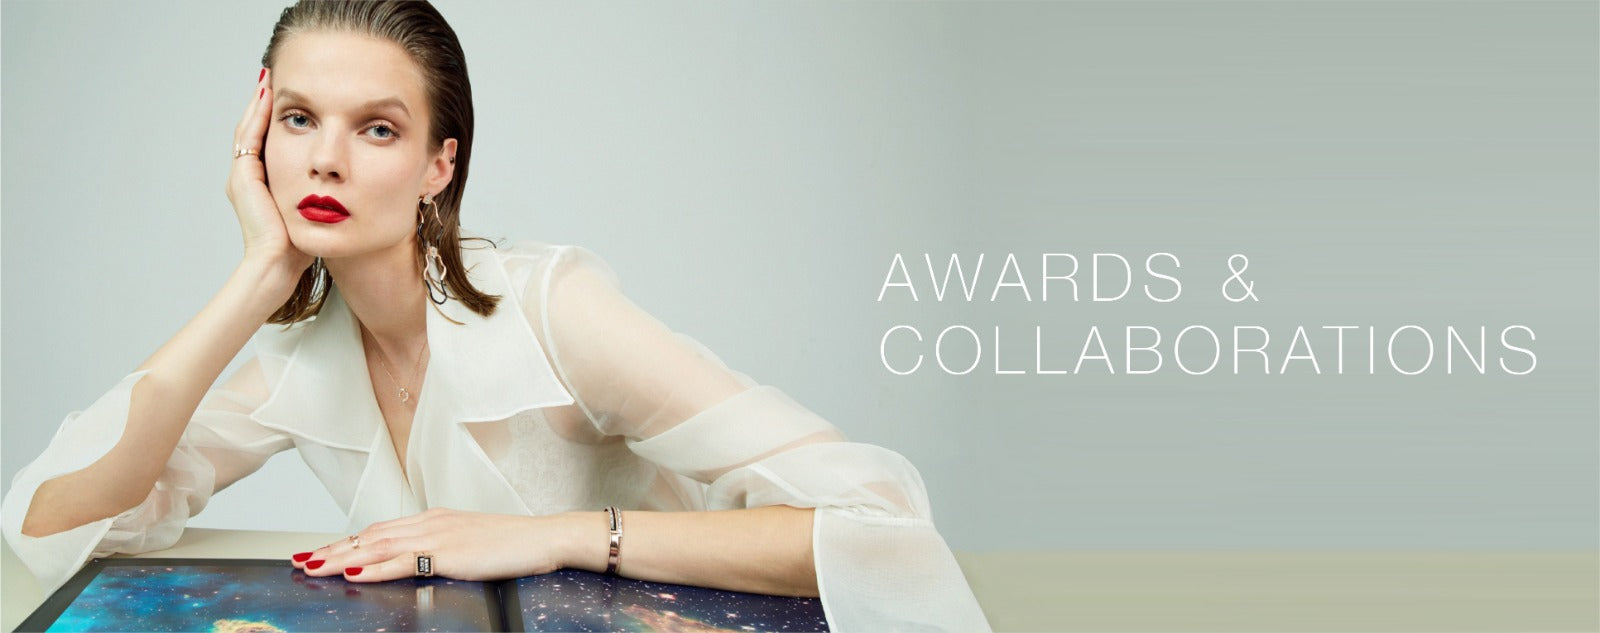 Awards & Collaborations | Melis Goral